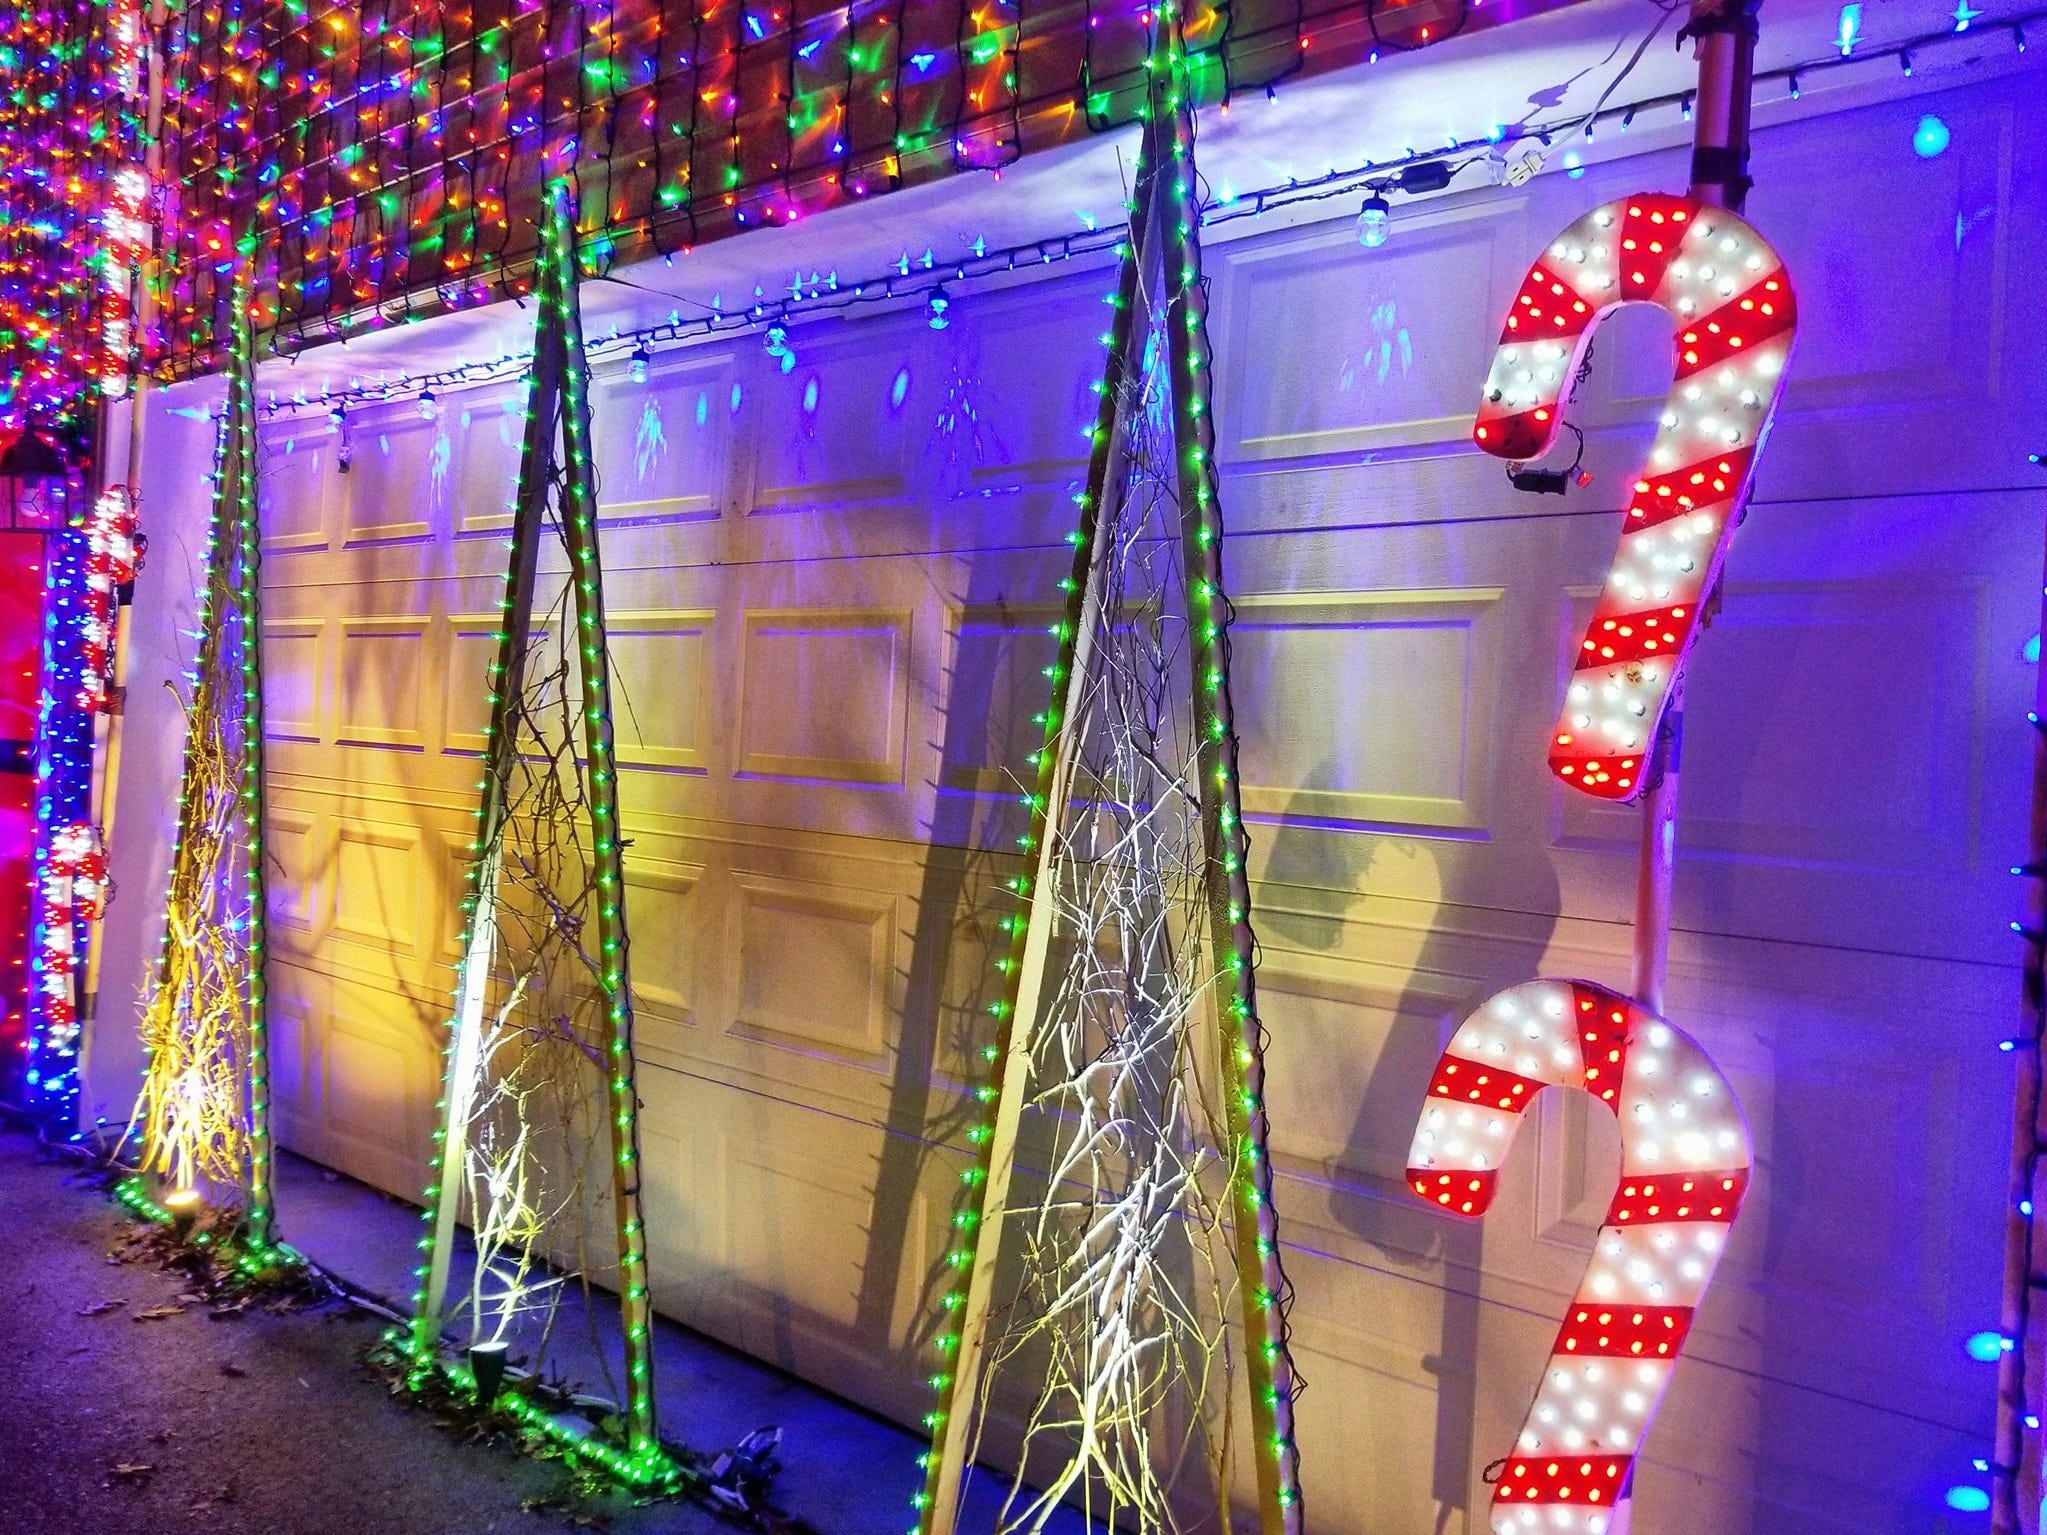 Each year, Brad Henn puts up a dazzling Christmas display in memory of his daughter, London, who died tragically in 2012. London's Lights features 300,000 twinkling lights.